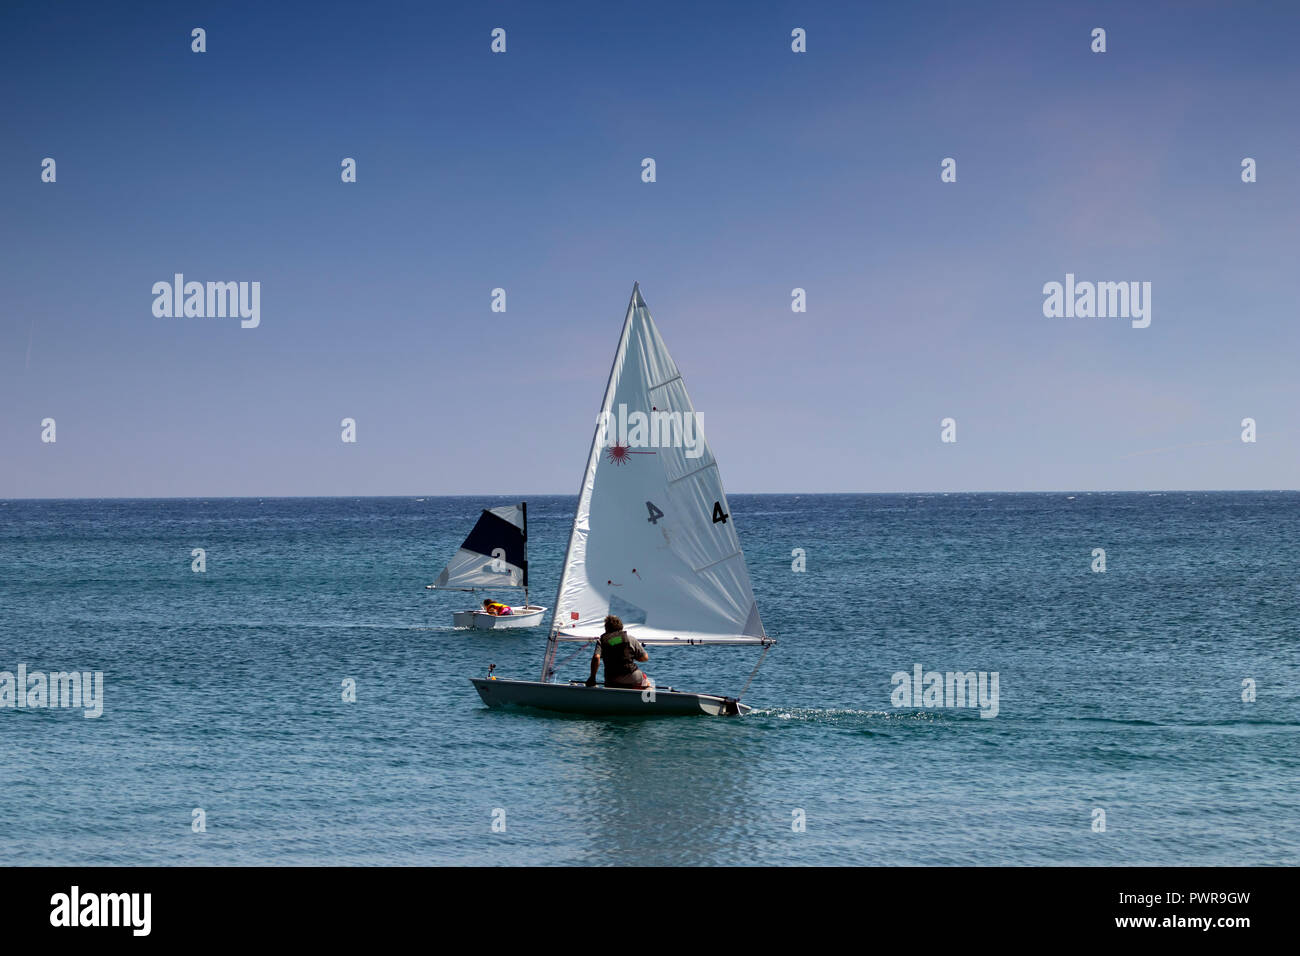 Two small sailboats with one man crew sail the Aegean sea near the shores of Santorini, Greece on a hot summer day. - Stock Image